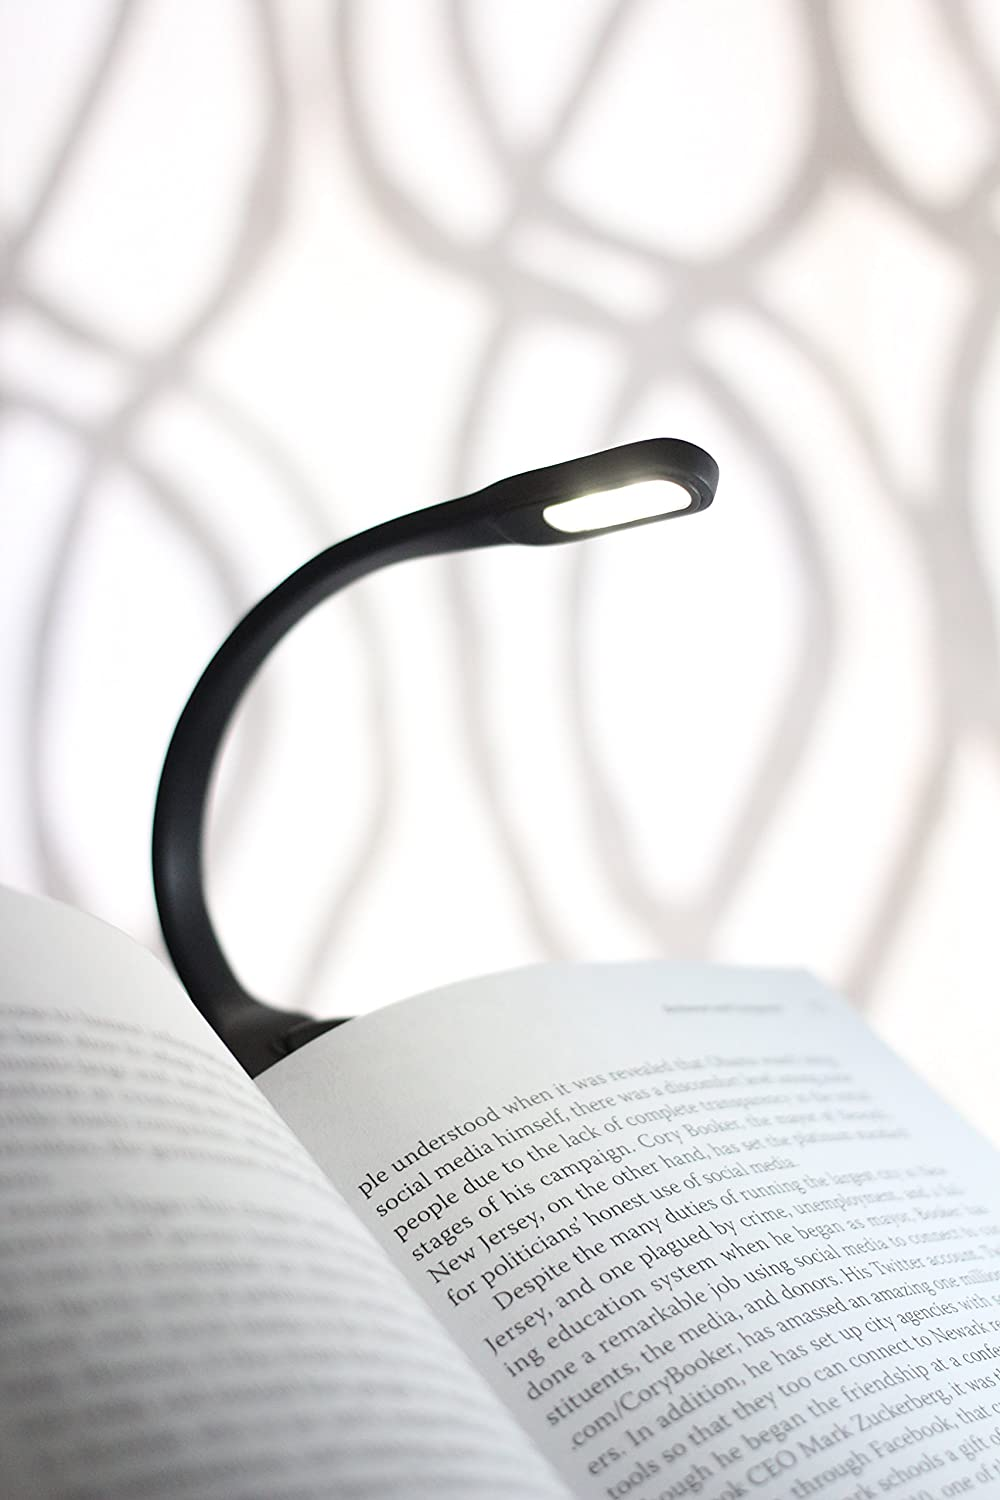 Recharge Booklight in action